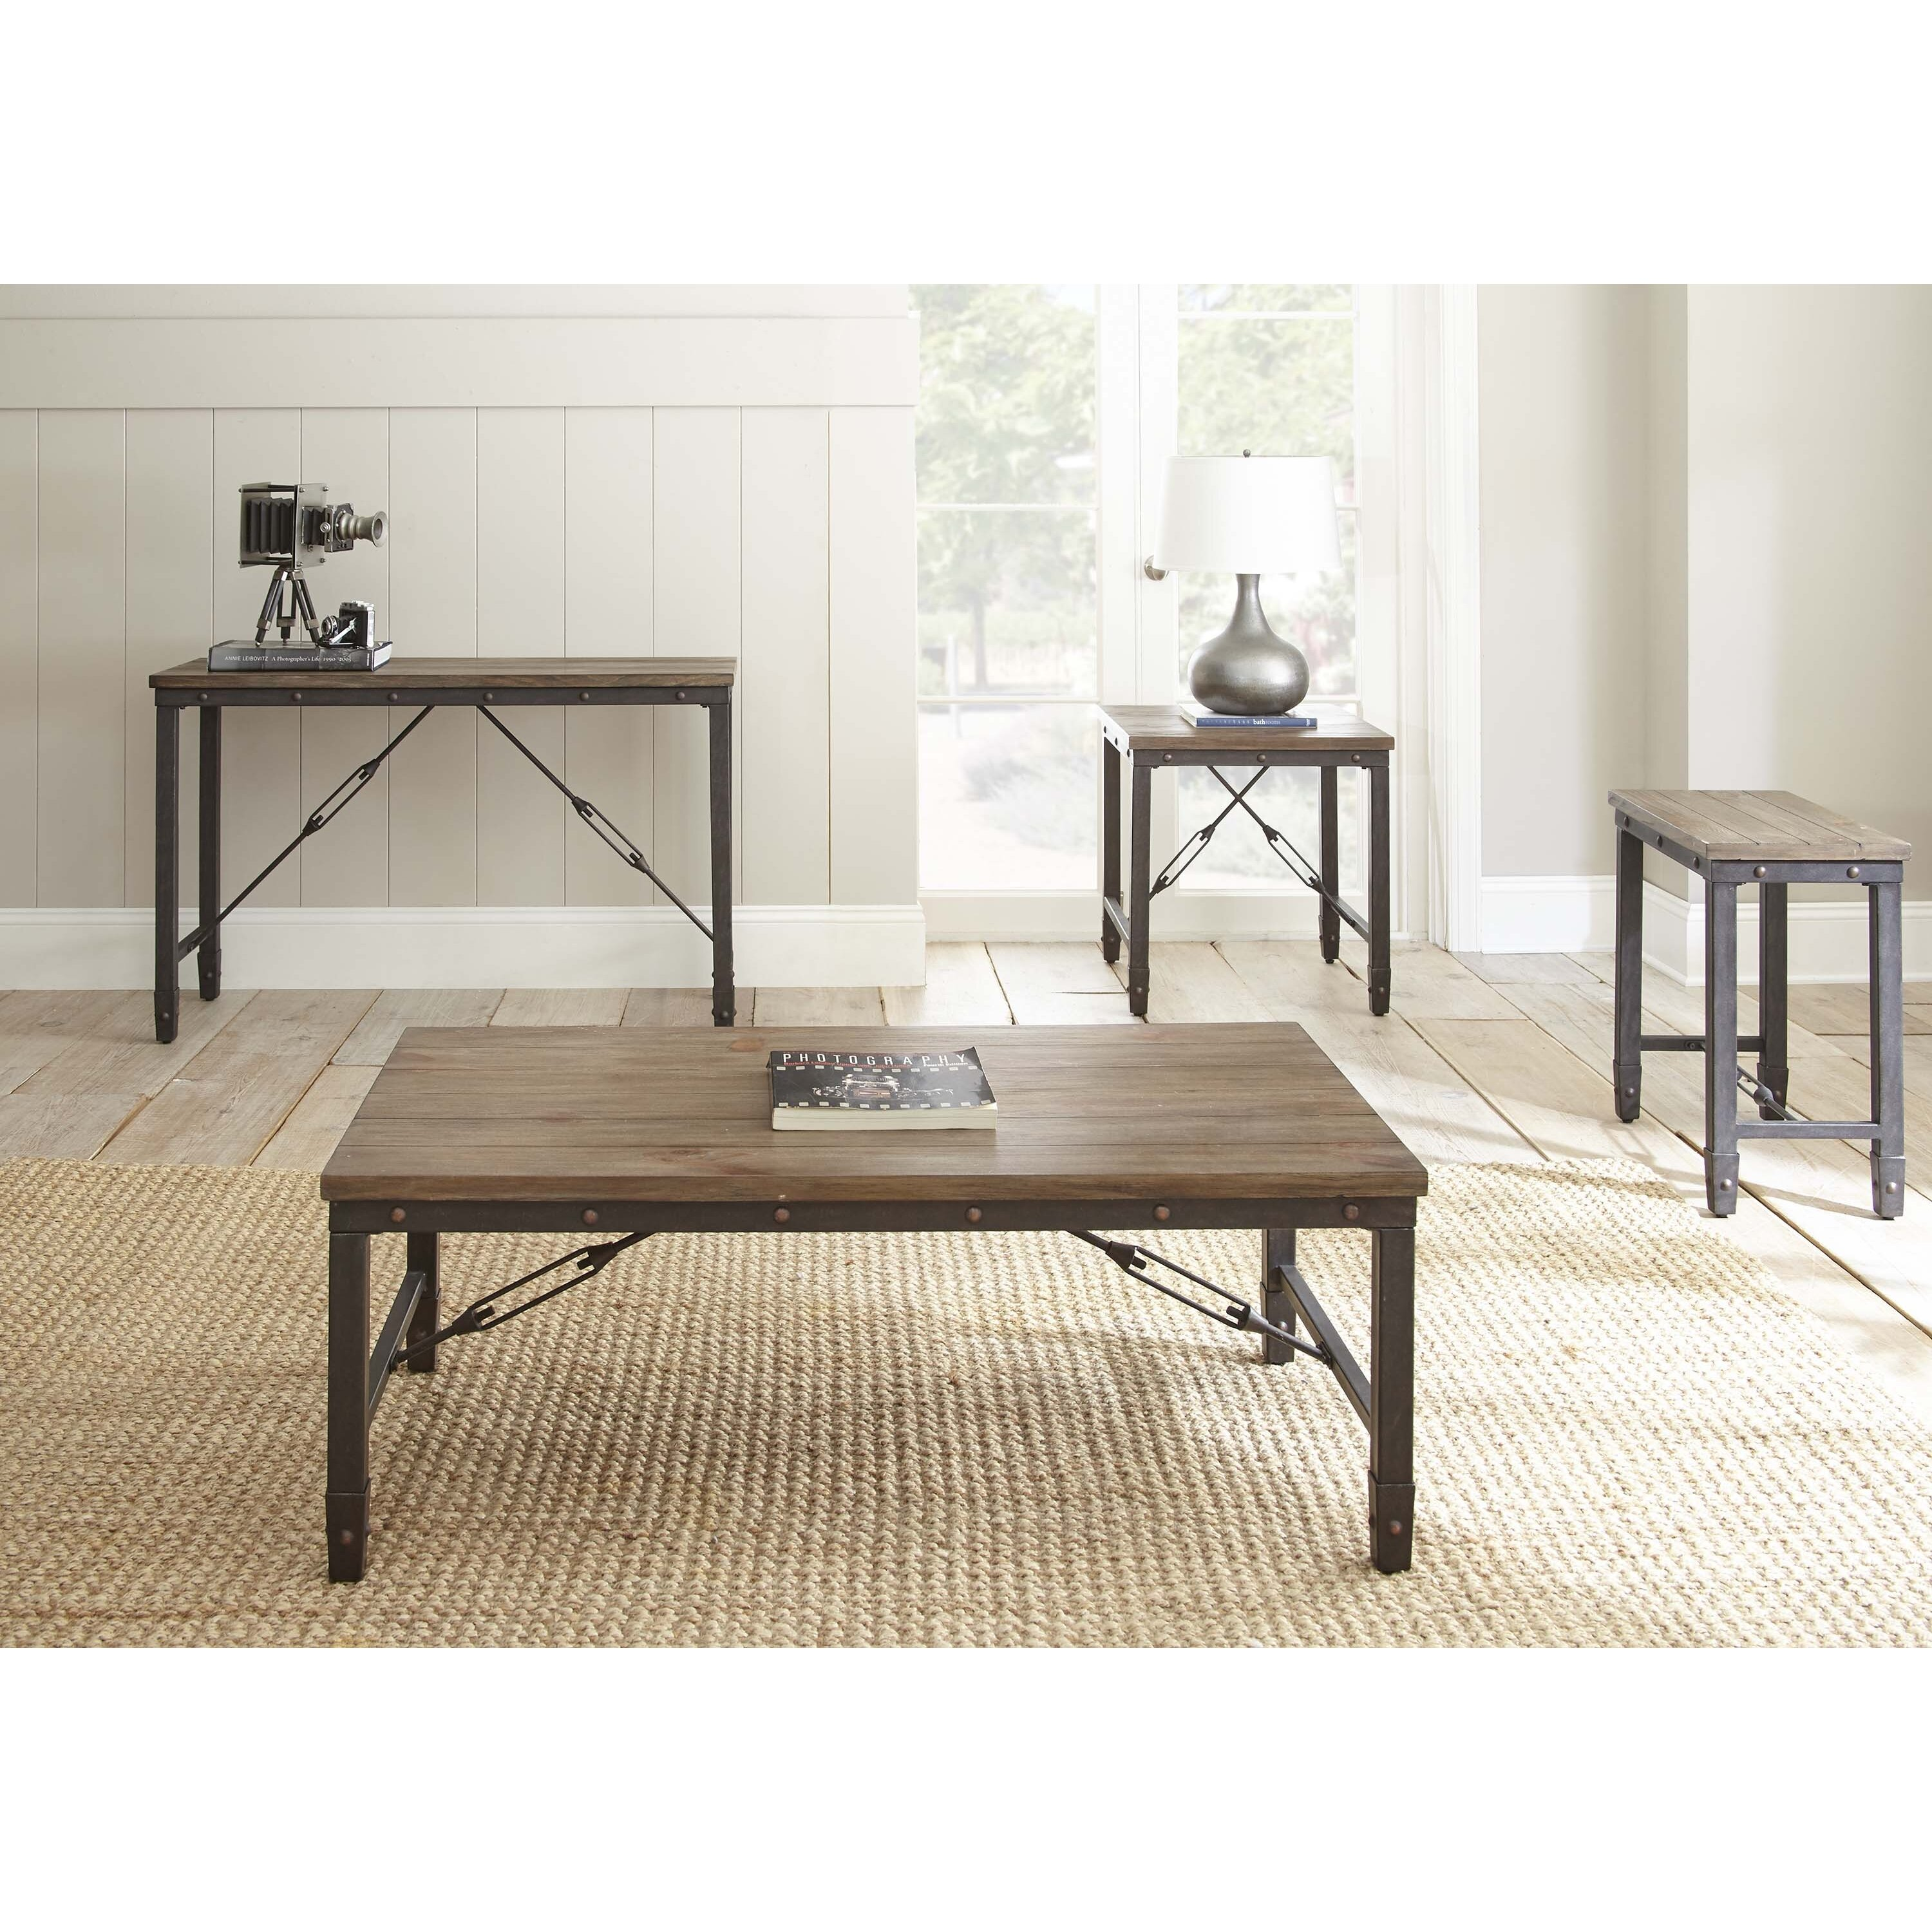 Steve Silver Furniture Jersey Coffee Table & Reviews